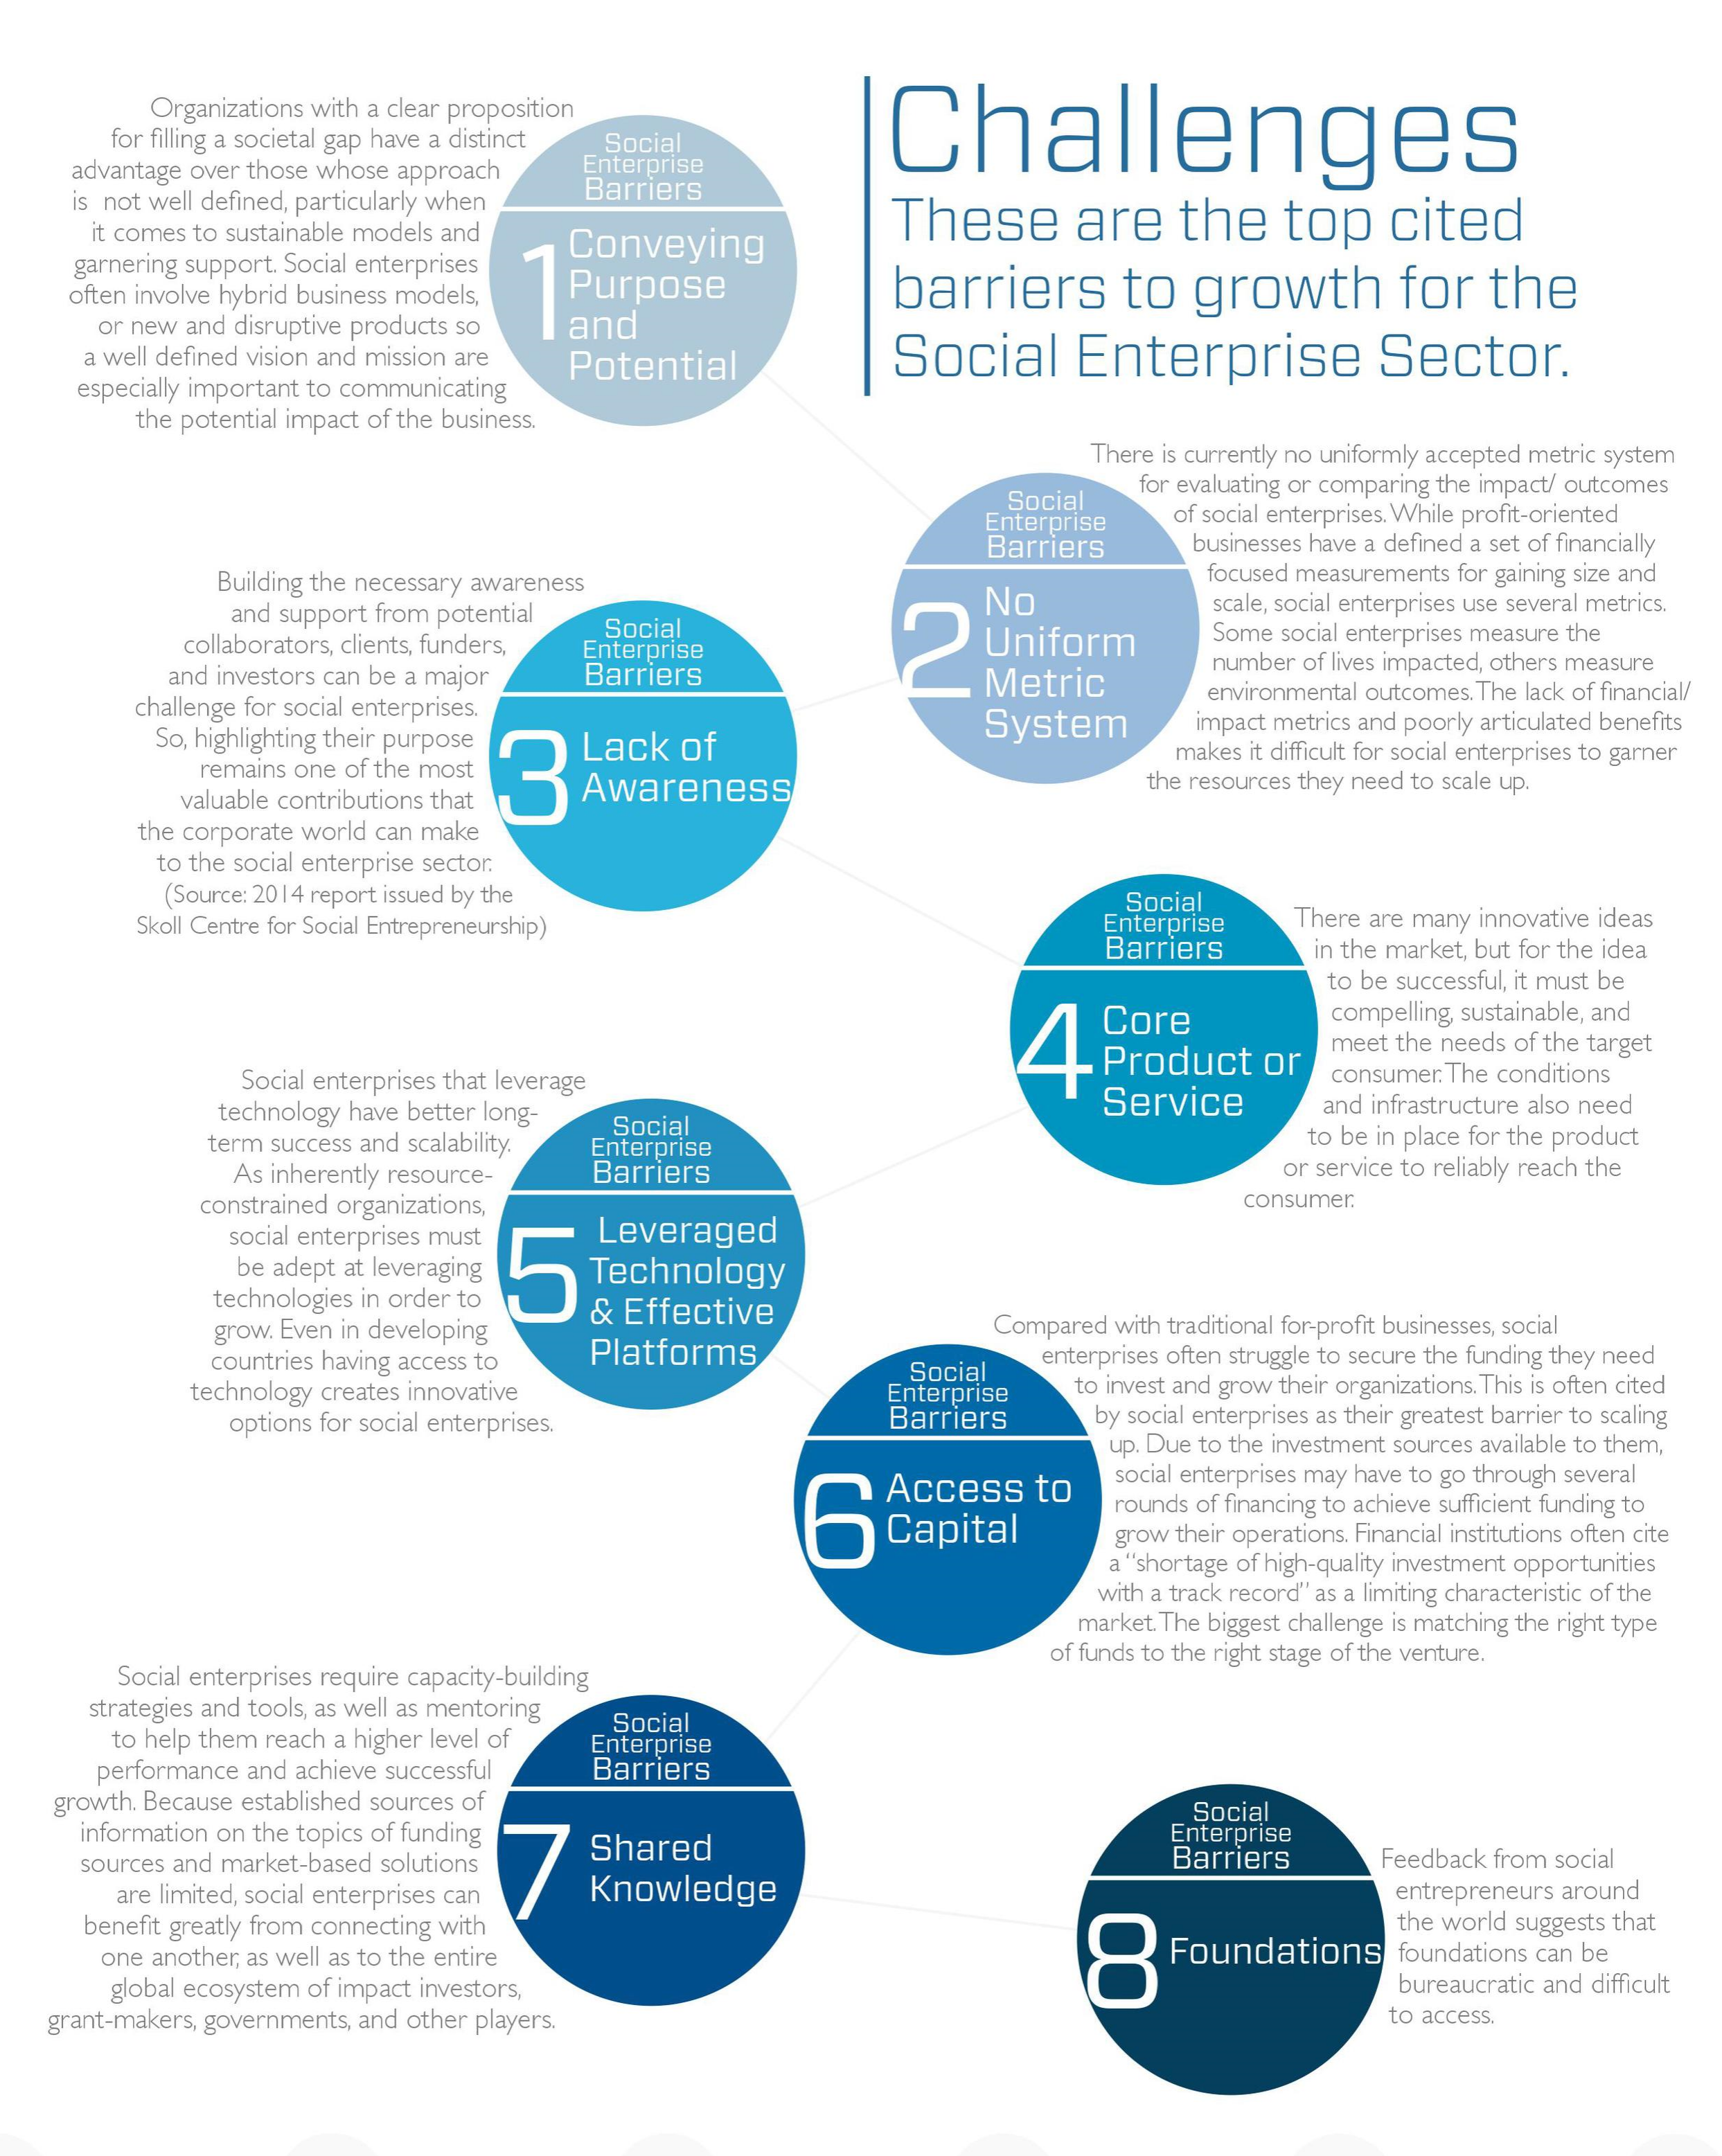 Challenges to Growth - Social Enterprise